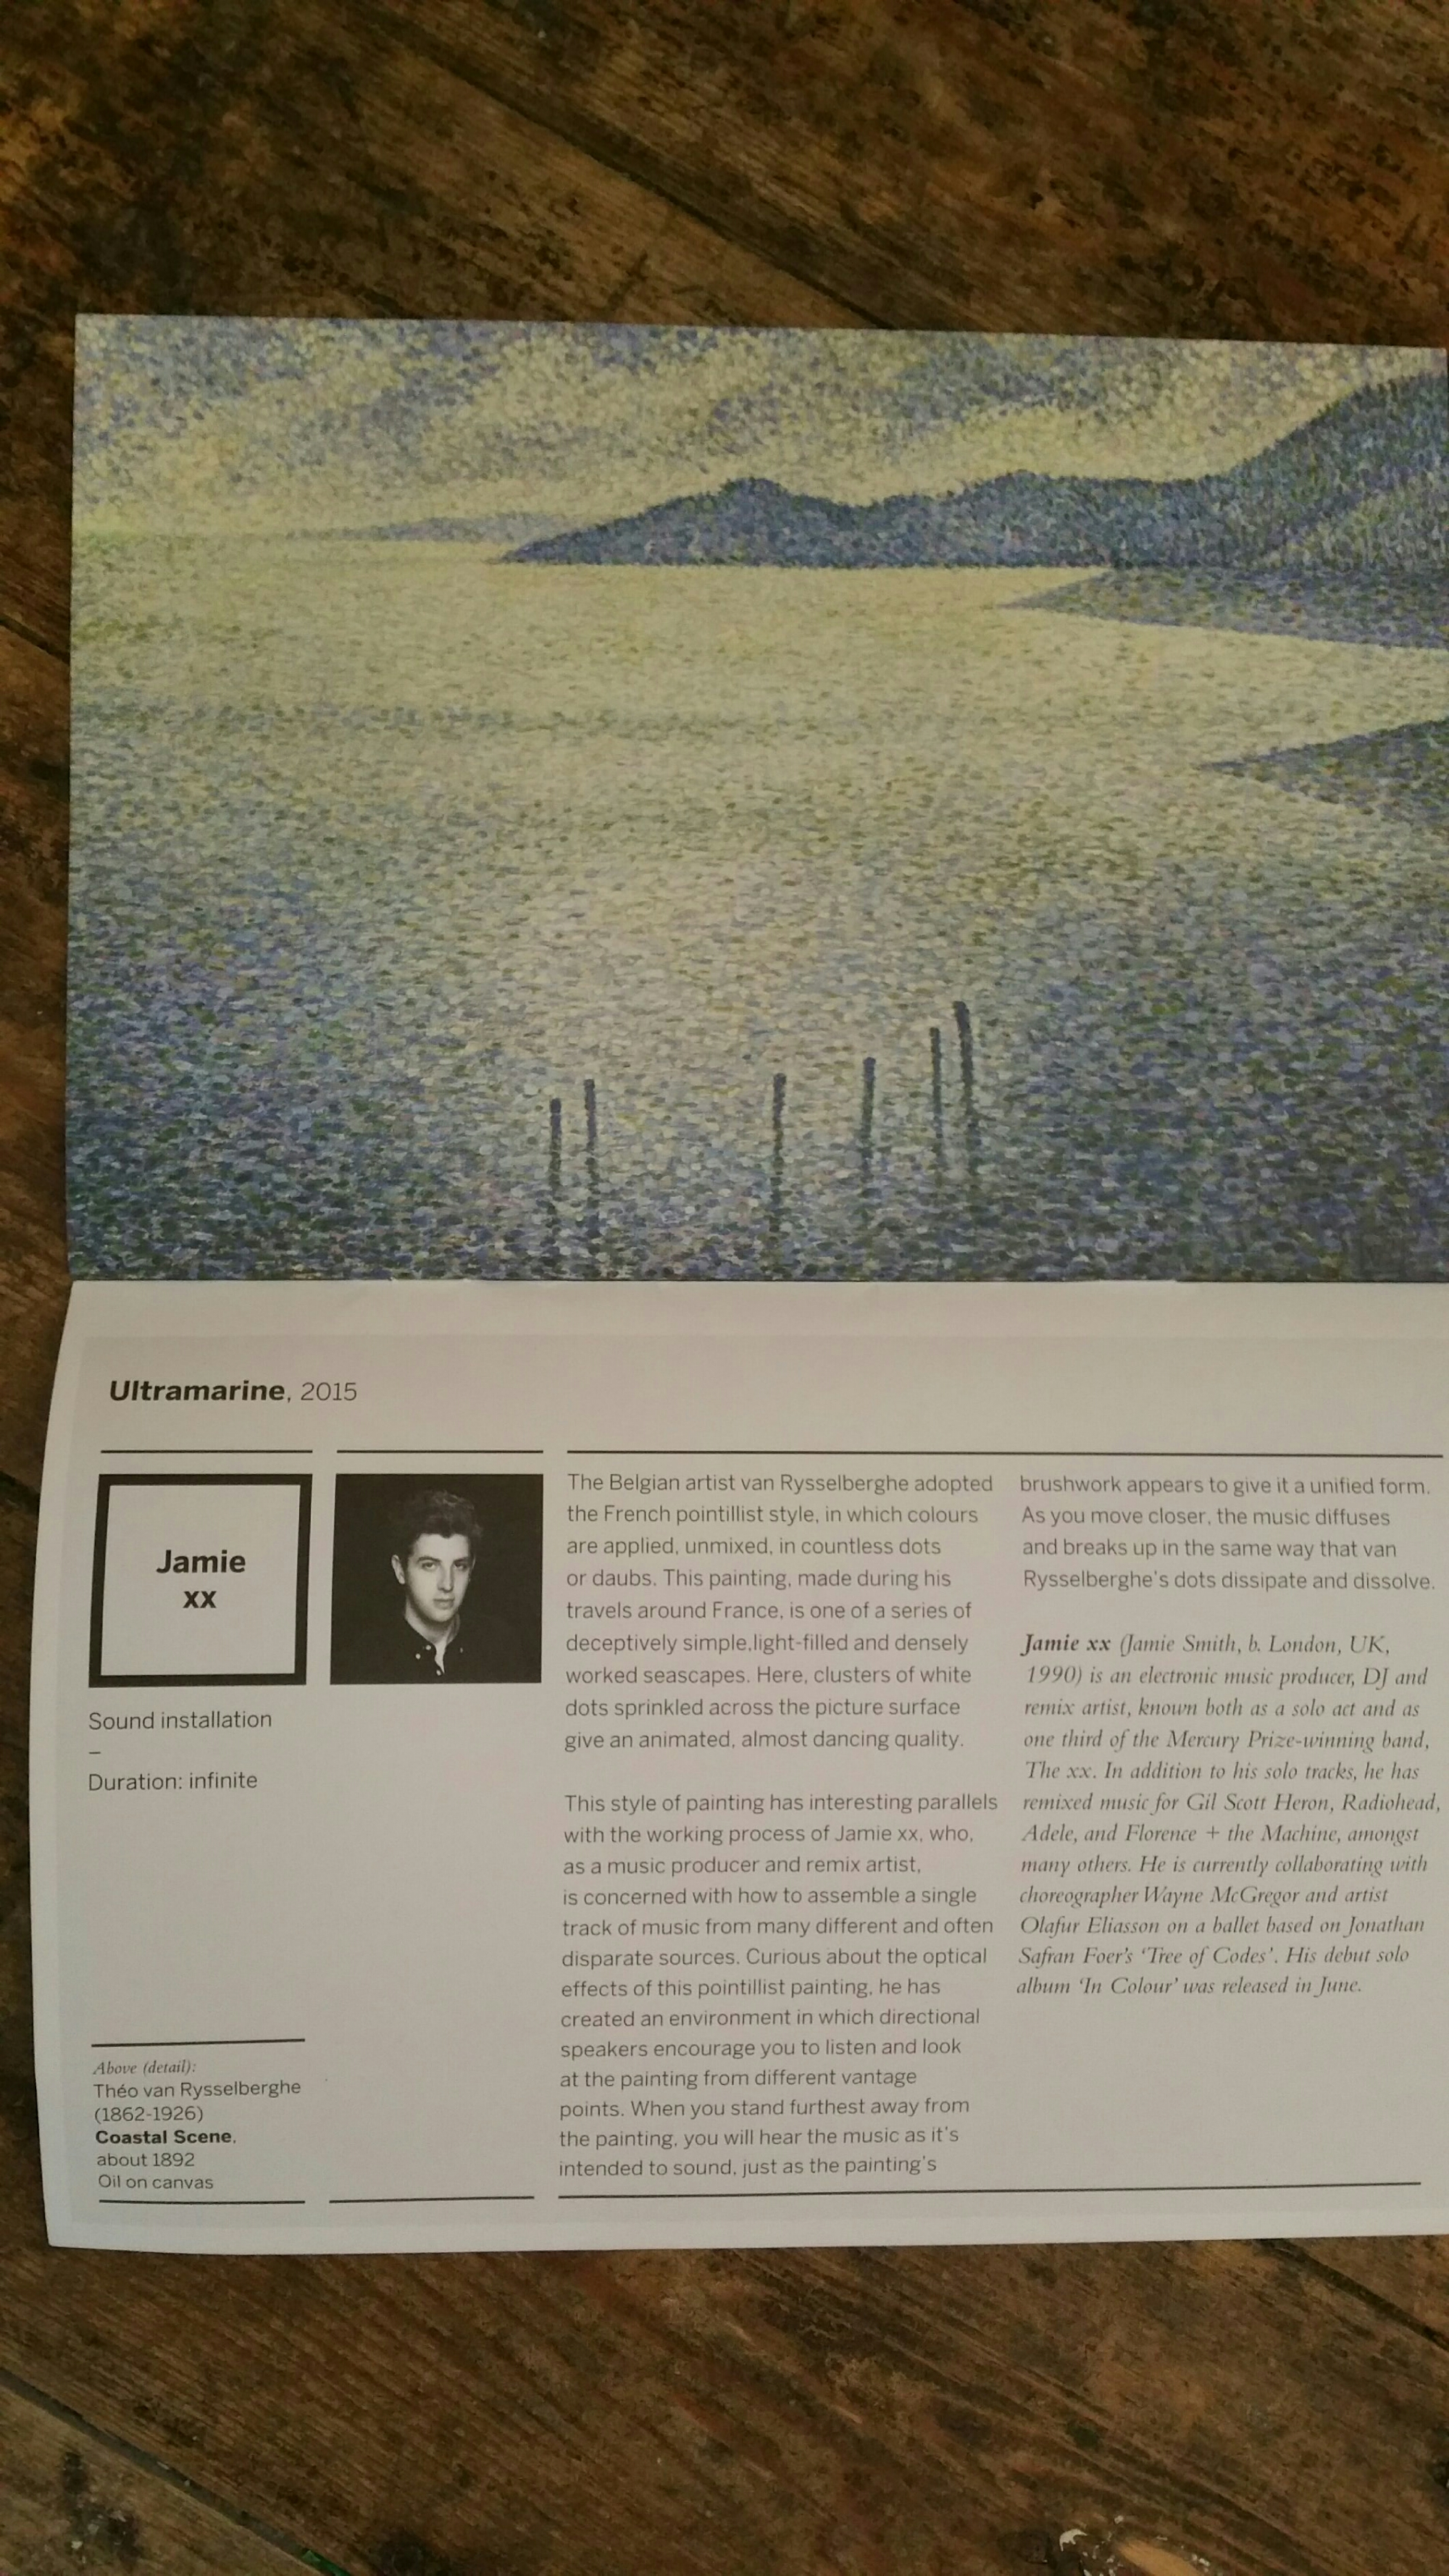 'Coastal Scene' by Theo van Rysselberghe, soundscape, 'Ultramarine', by Jamie xx, at the National Gallery